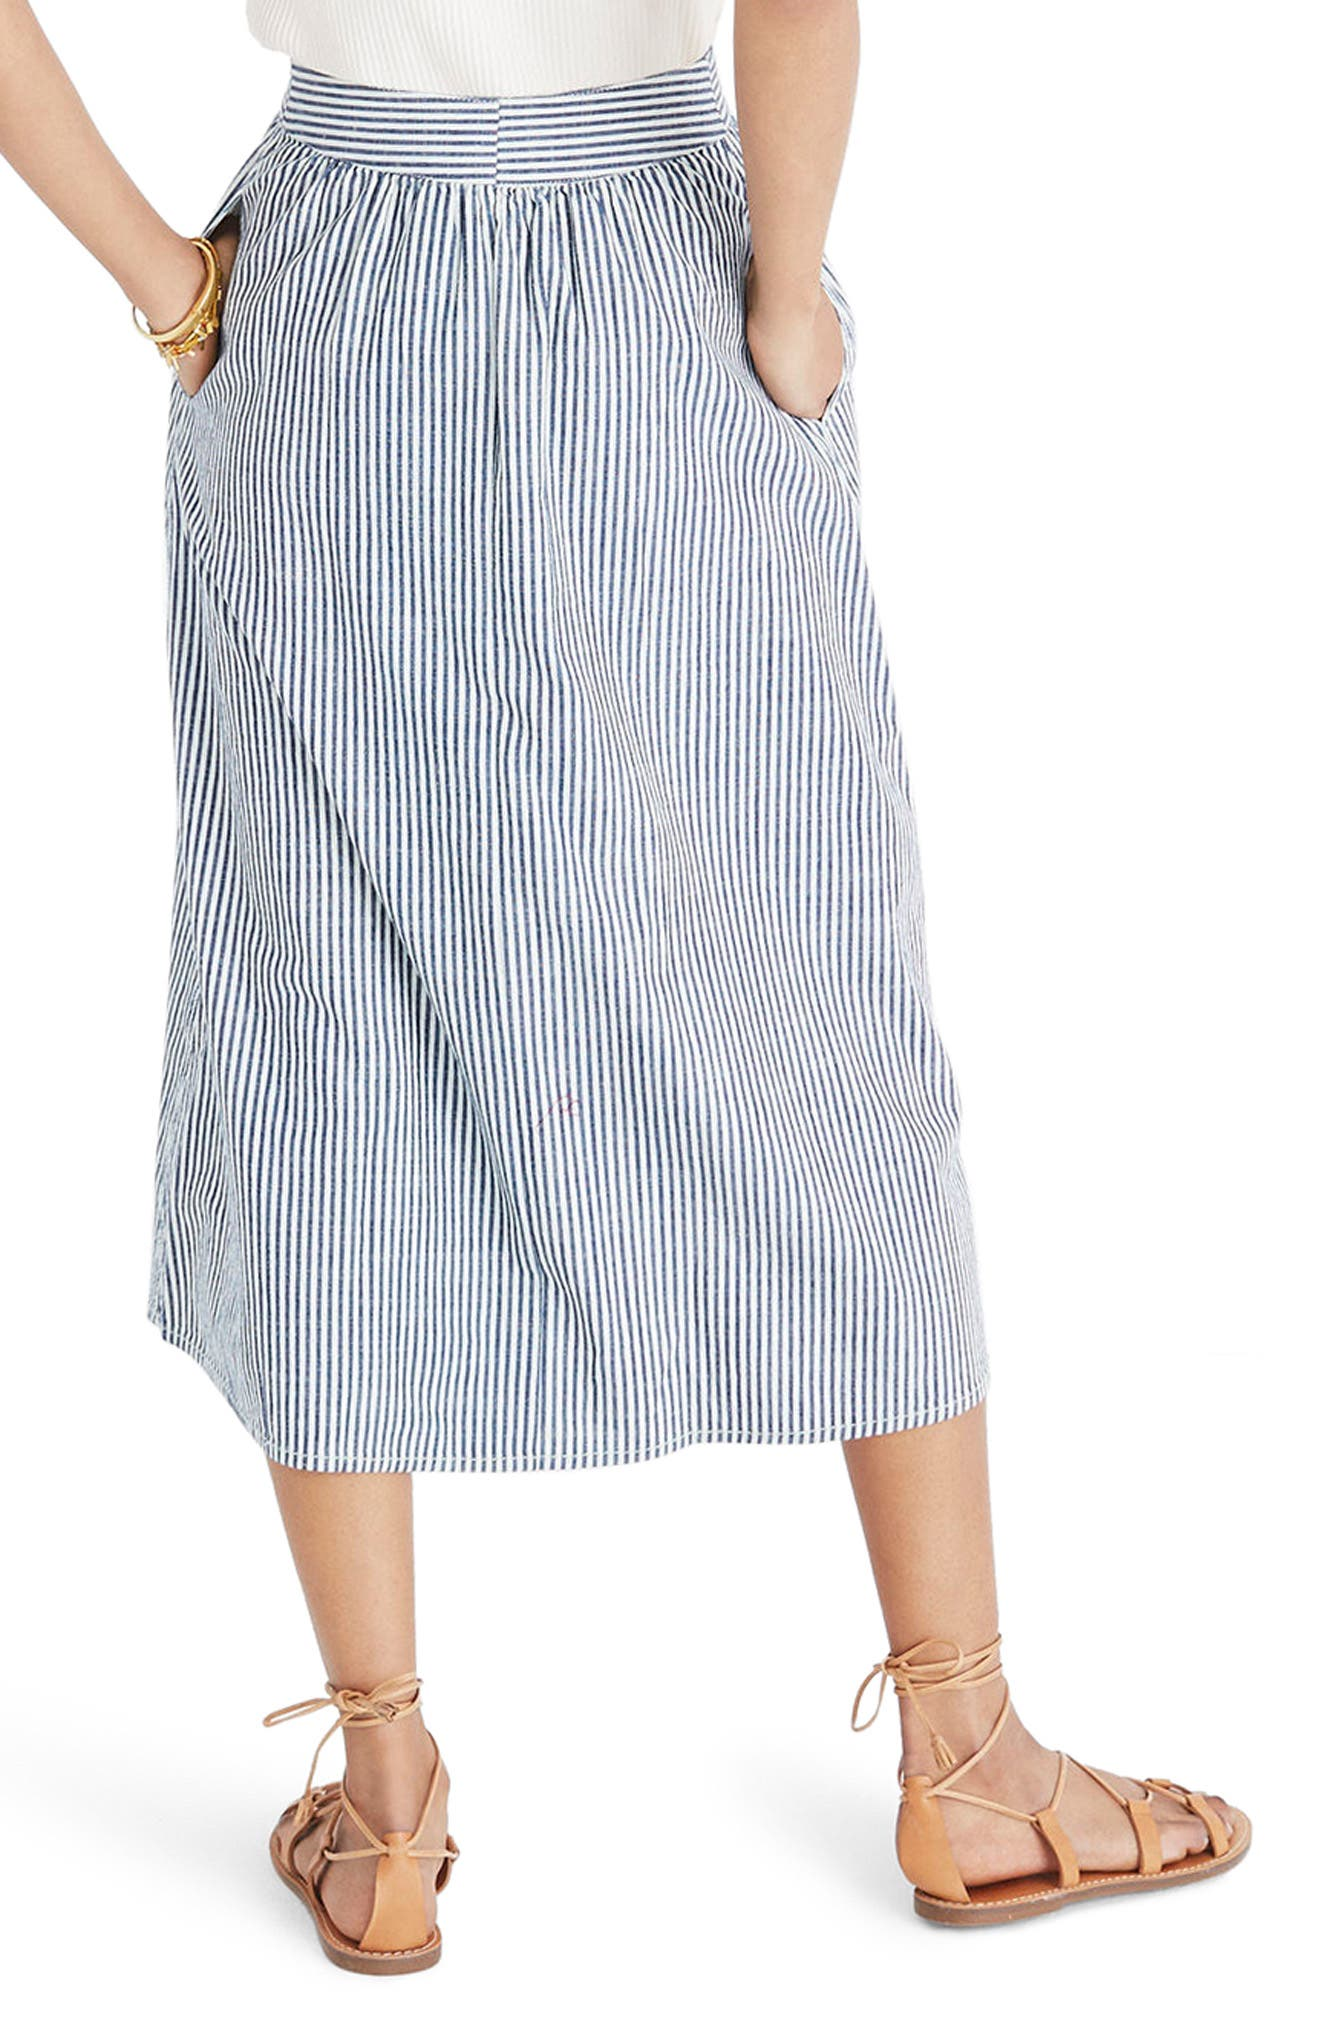 Palisade Chambray Stripe Button Front Midi Skirt,                             Alternate thumbnail 2, color,                             Chambray Stripe